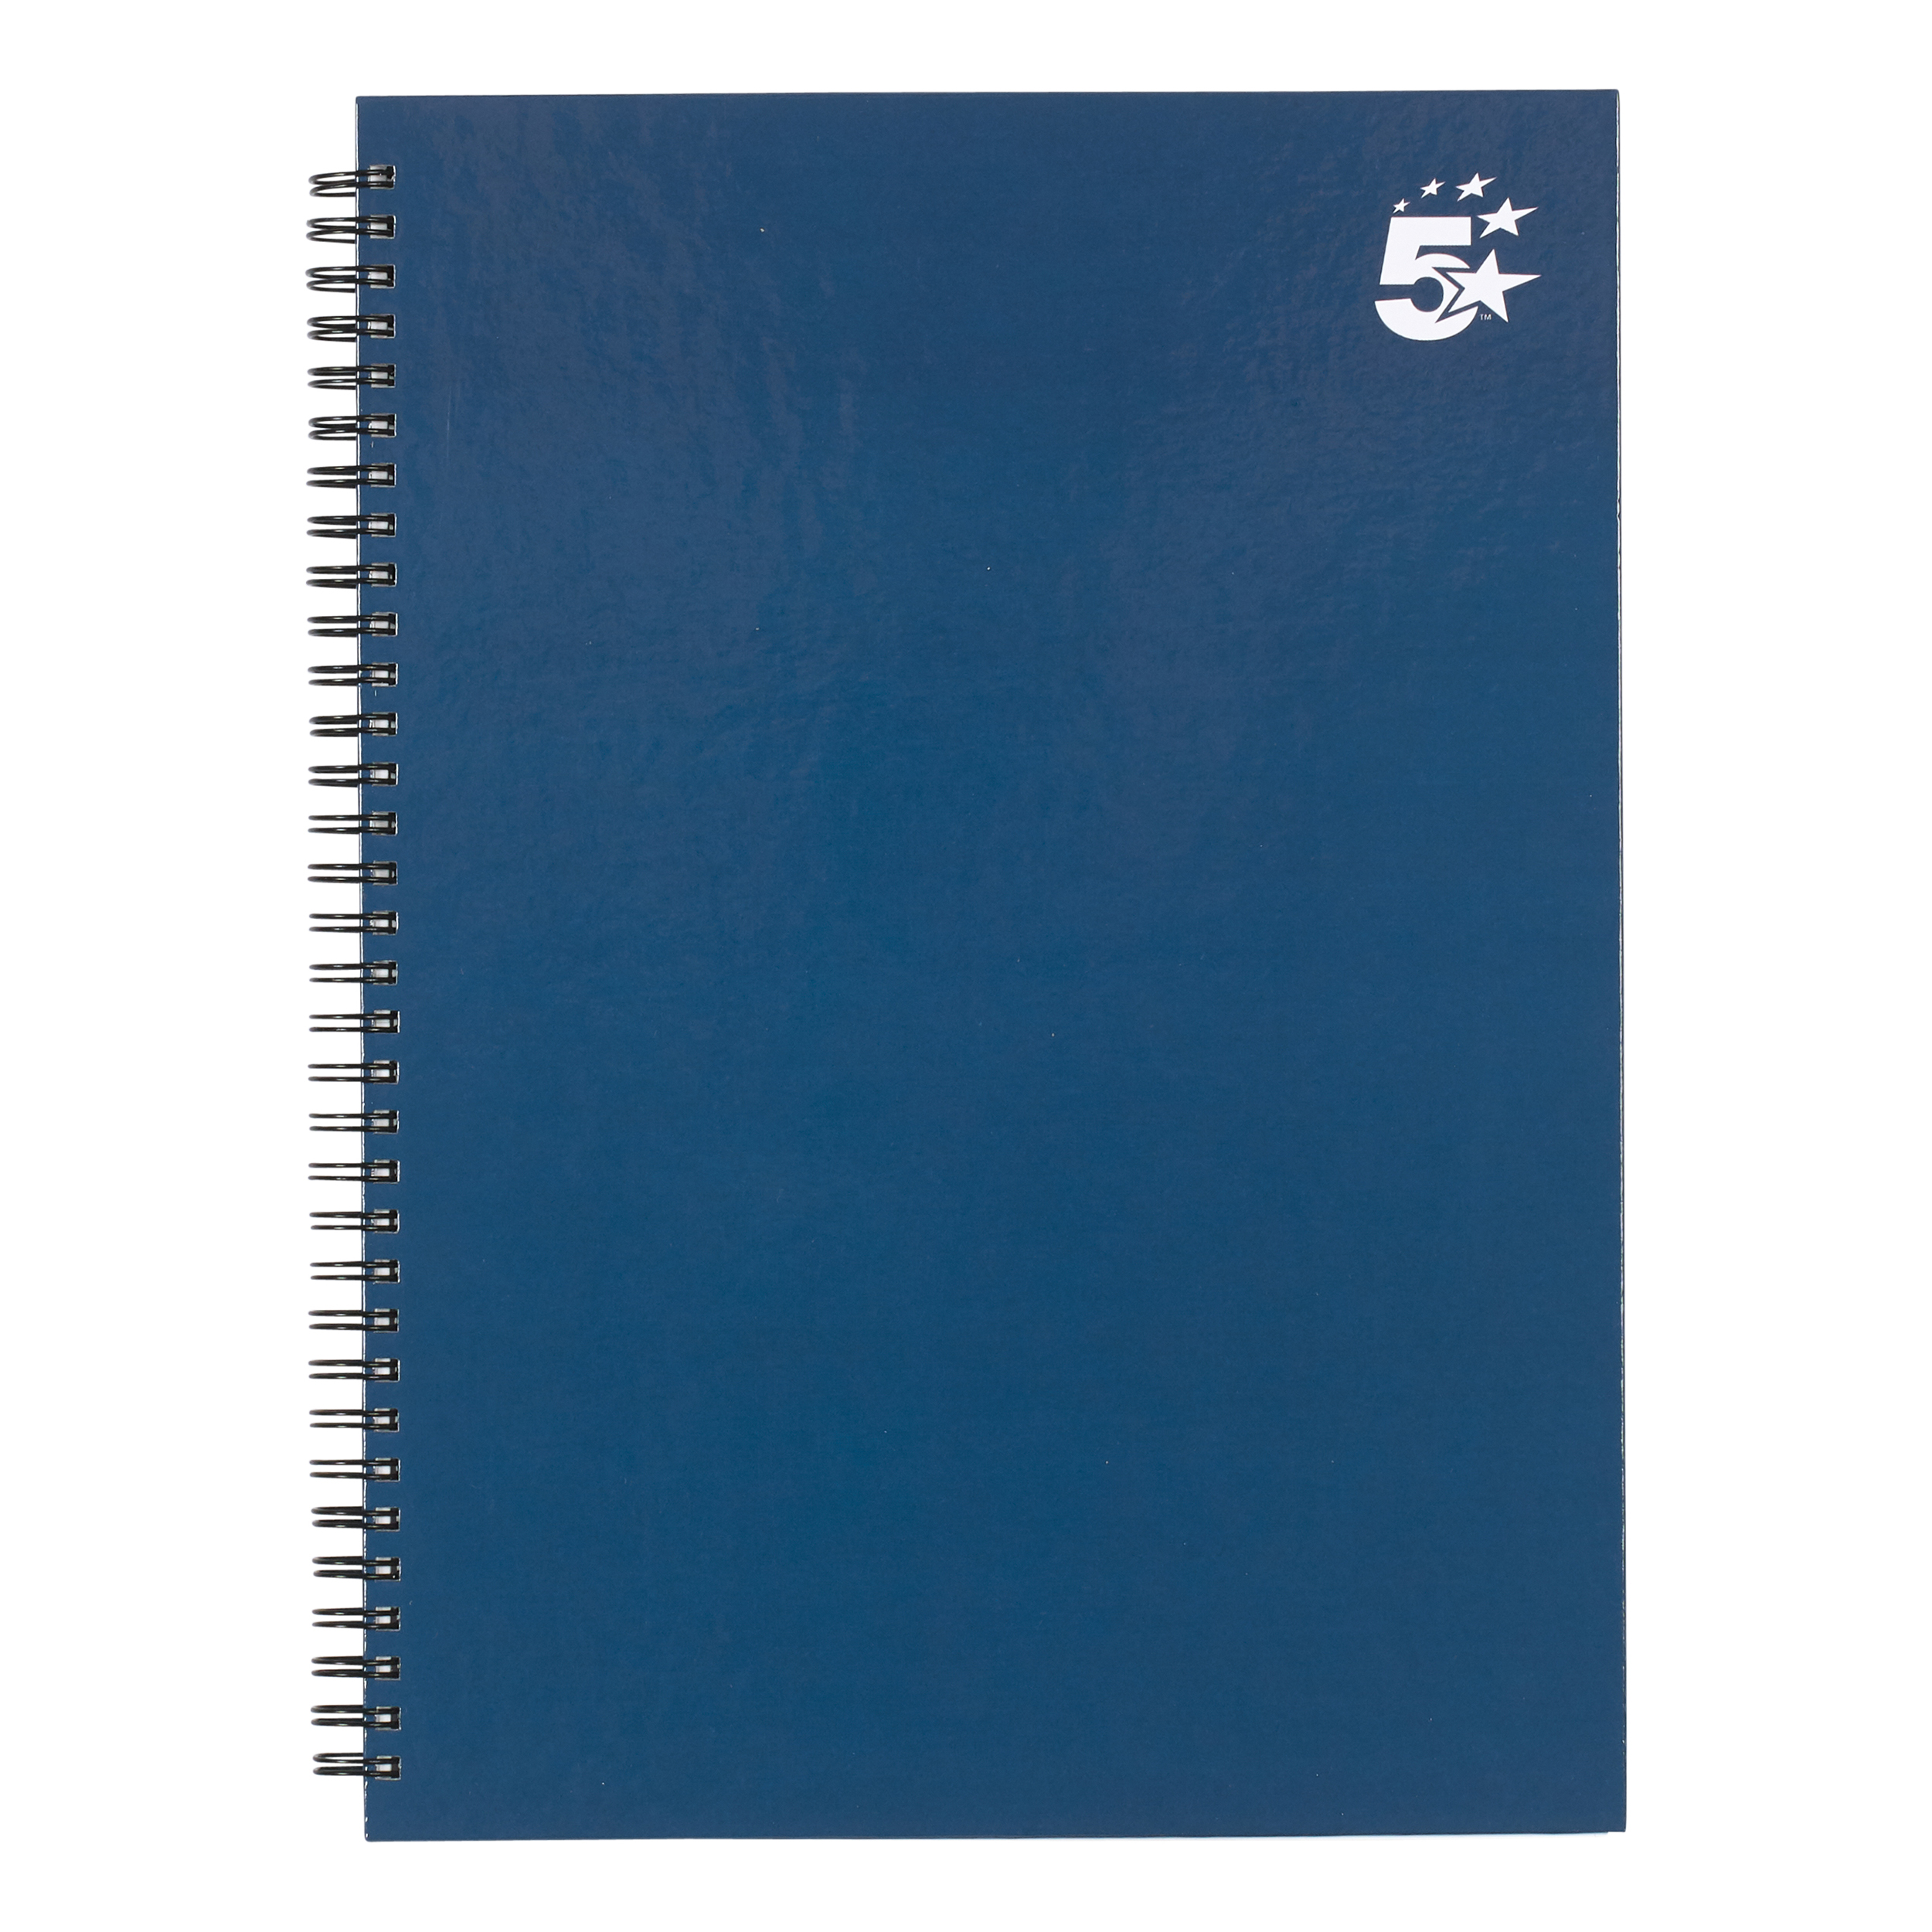 Paper pads or notebooks 5 Star Office Twinbound Hardback A4 140Pg Indigo Ref 943482 Pack 5